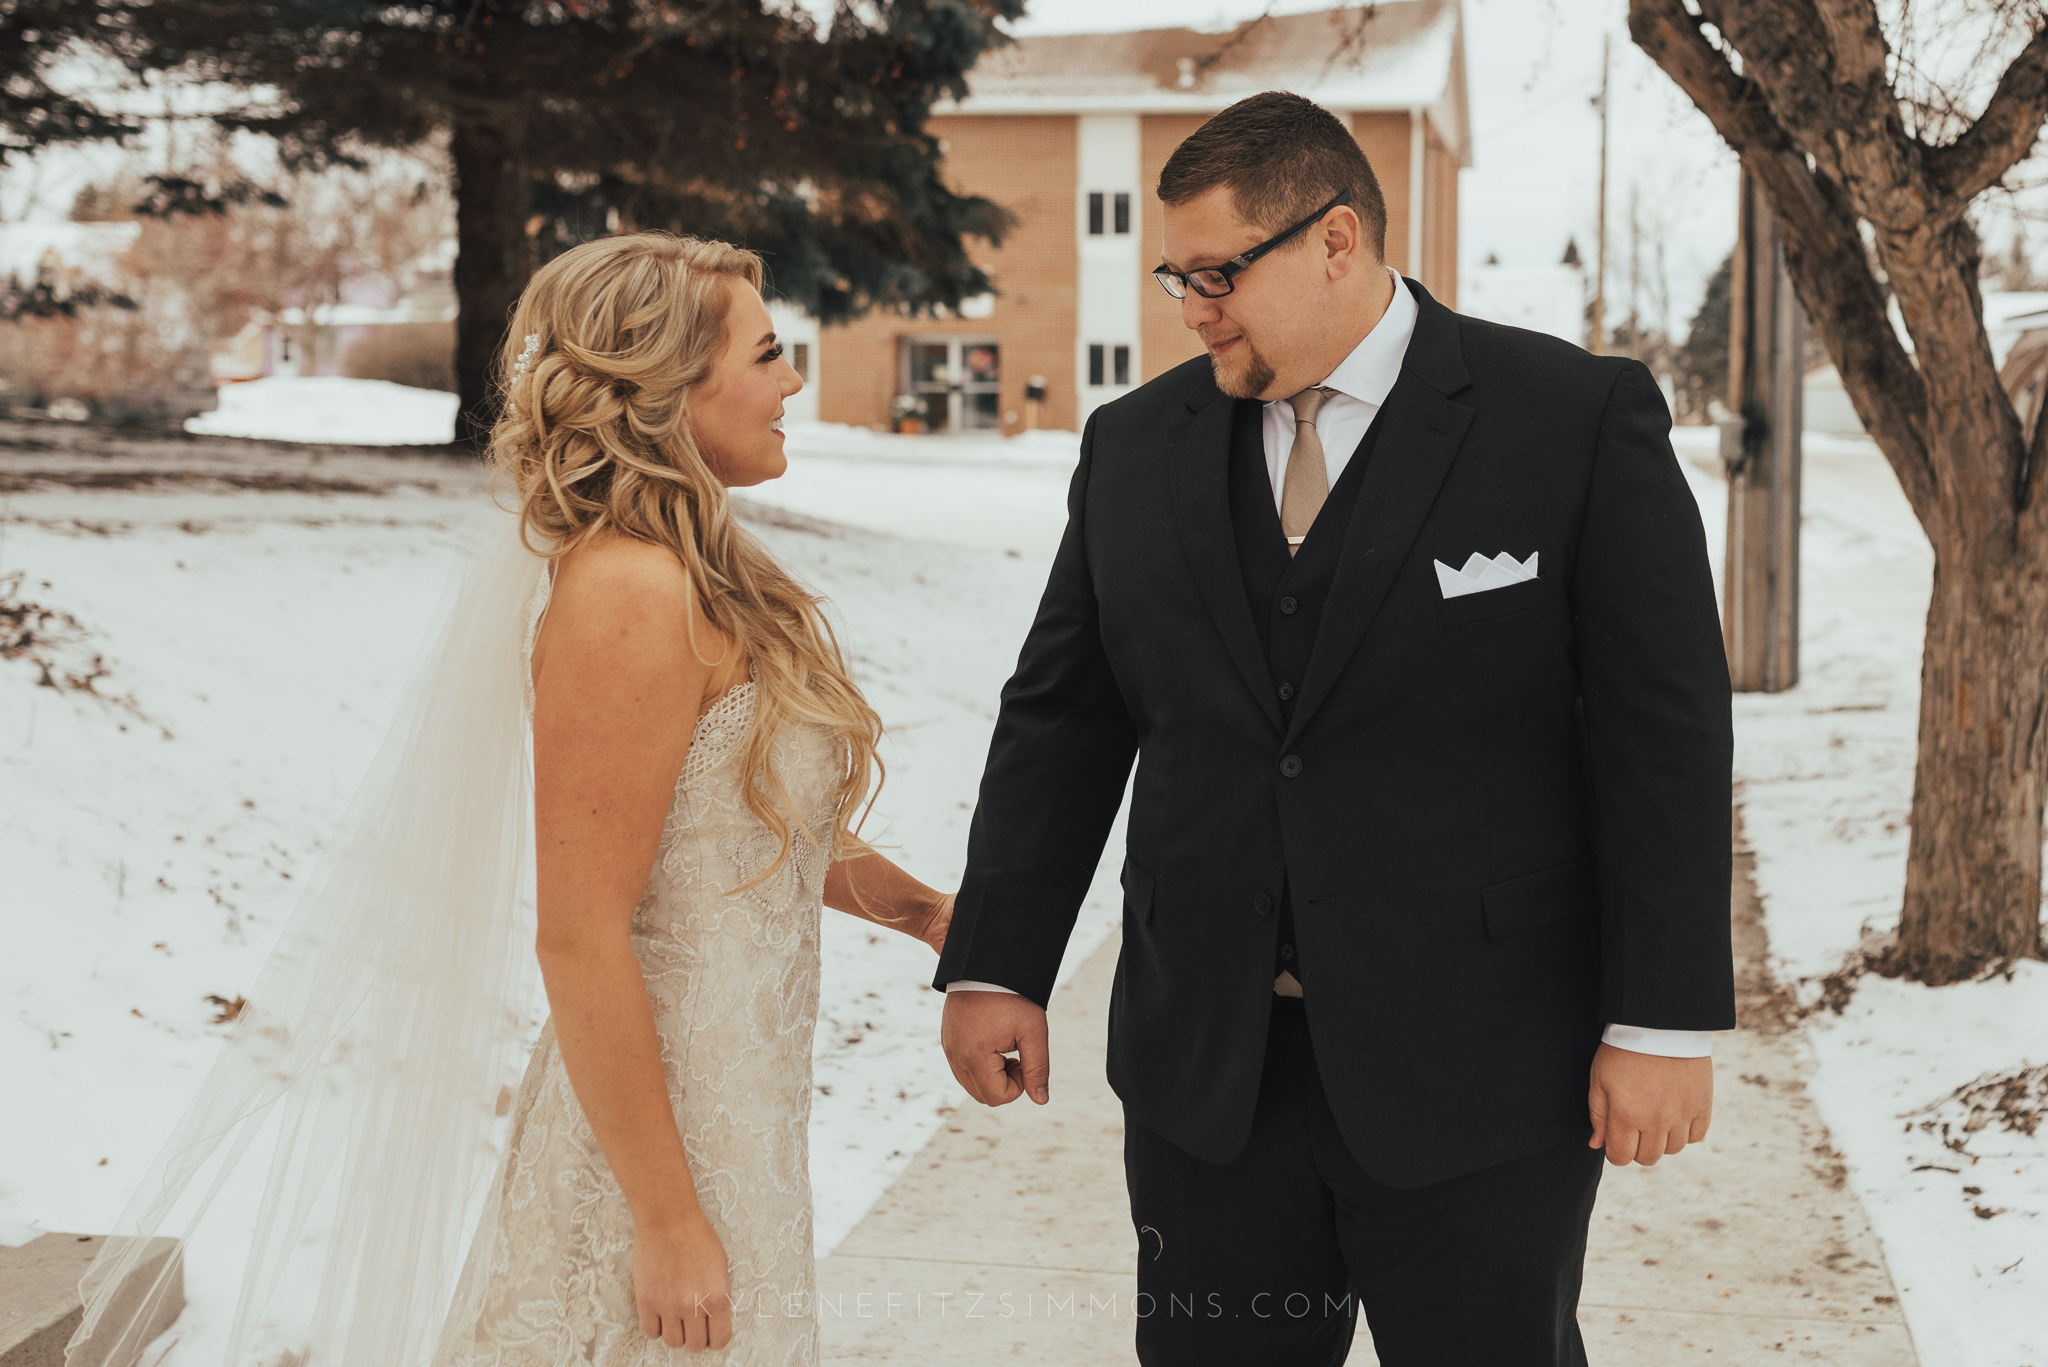 giannonatti-minnesota-winter-wedding-19.jpg